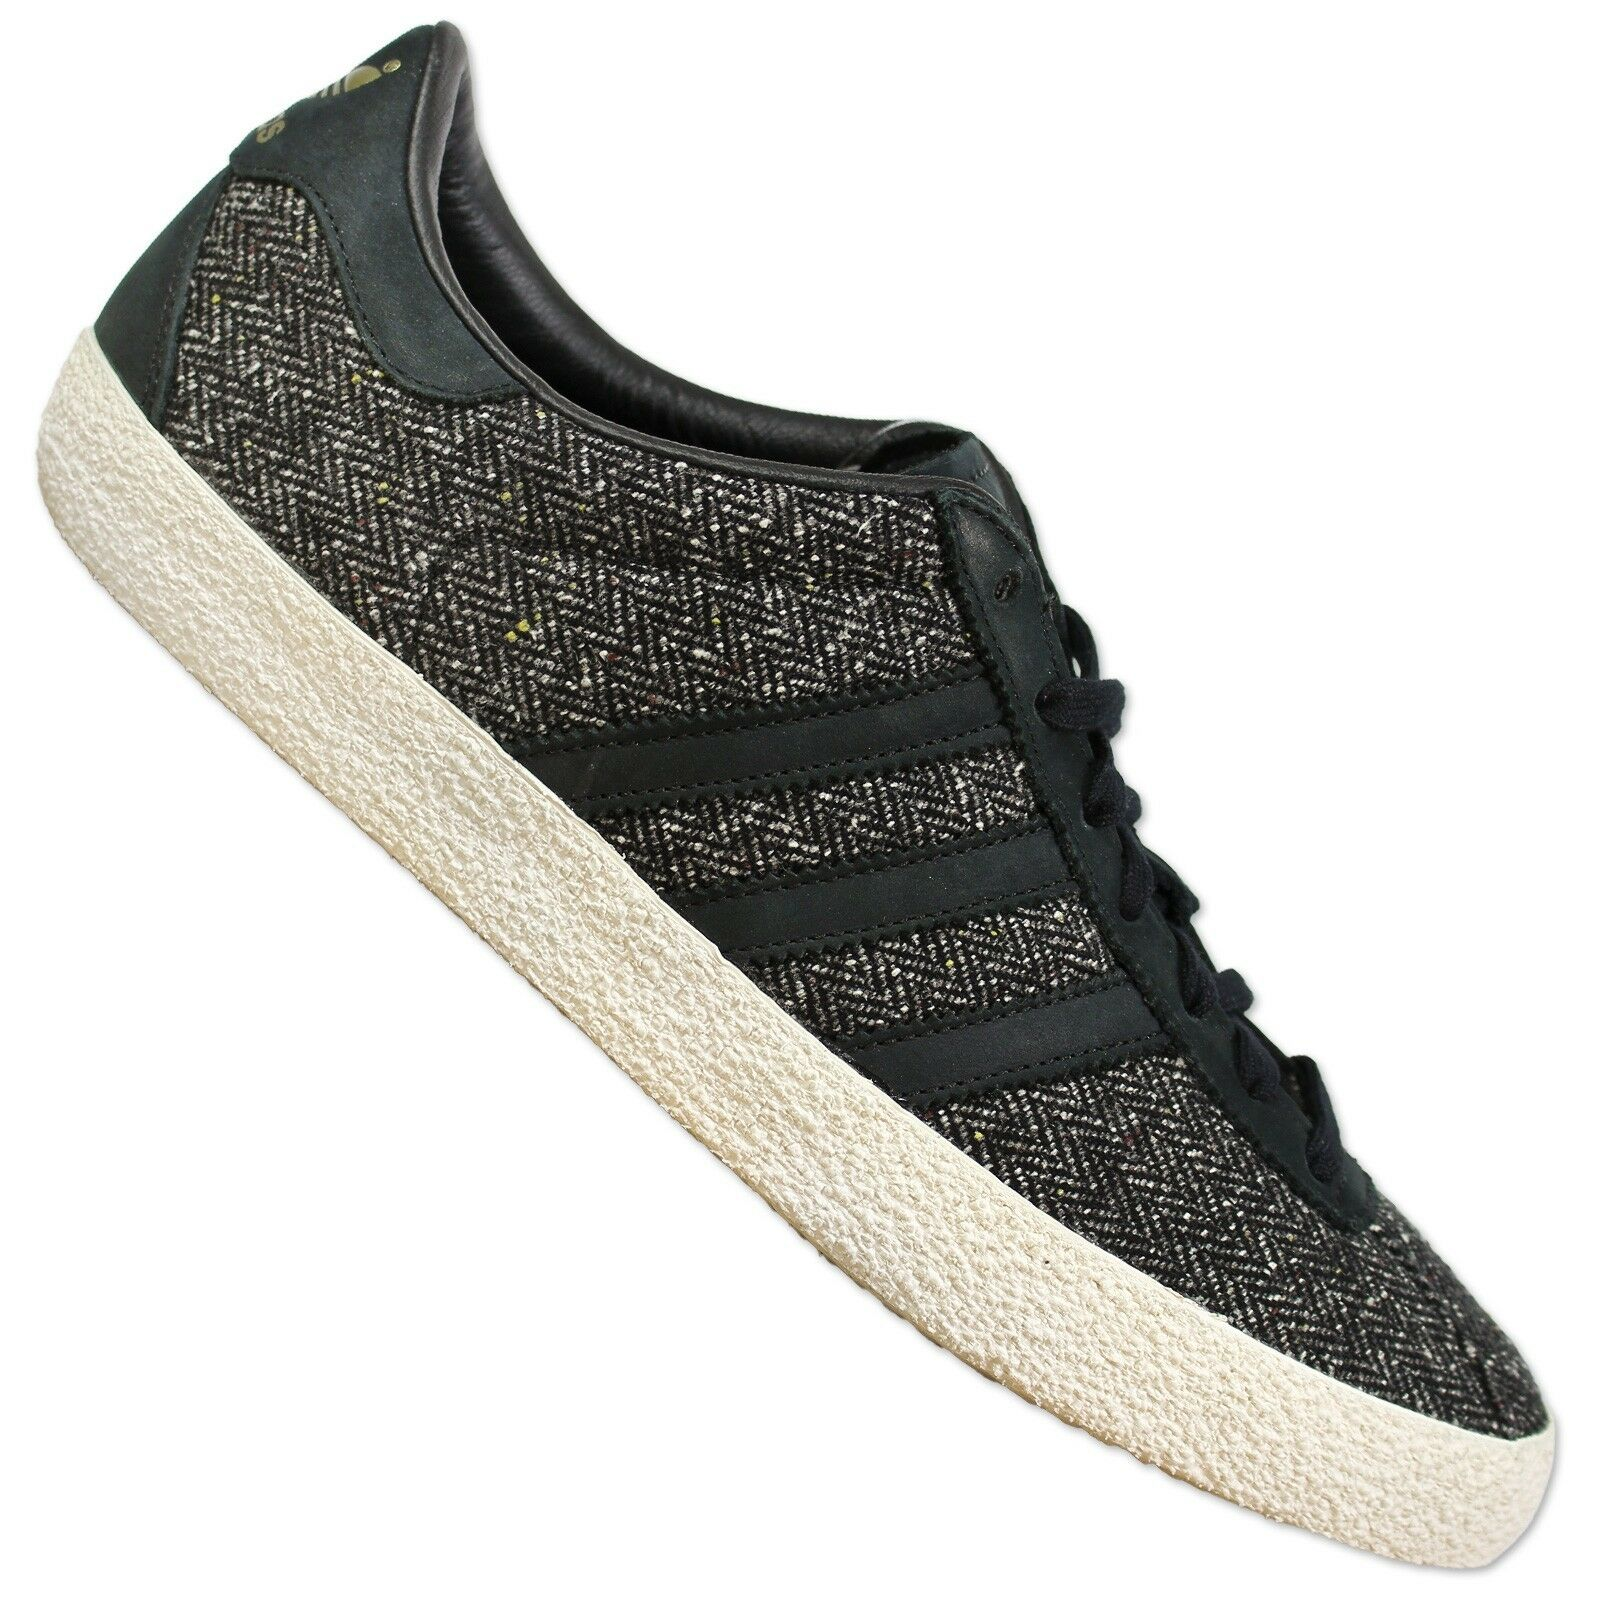 Adidas Originals Gazelle gamuza 70s zapatillas b24981 Zapatos  de gamuza Gazelle tweed negro 124e18